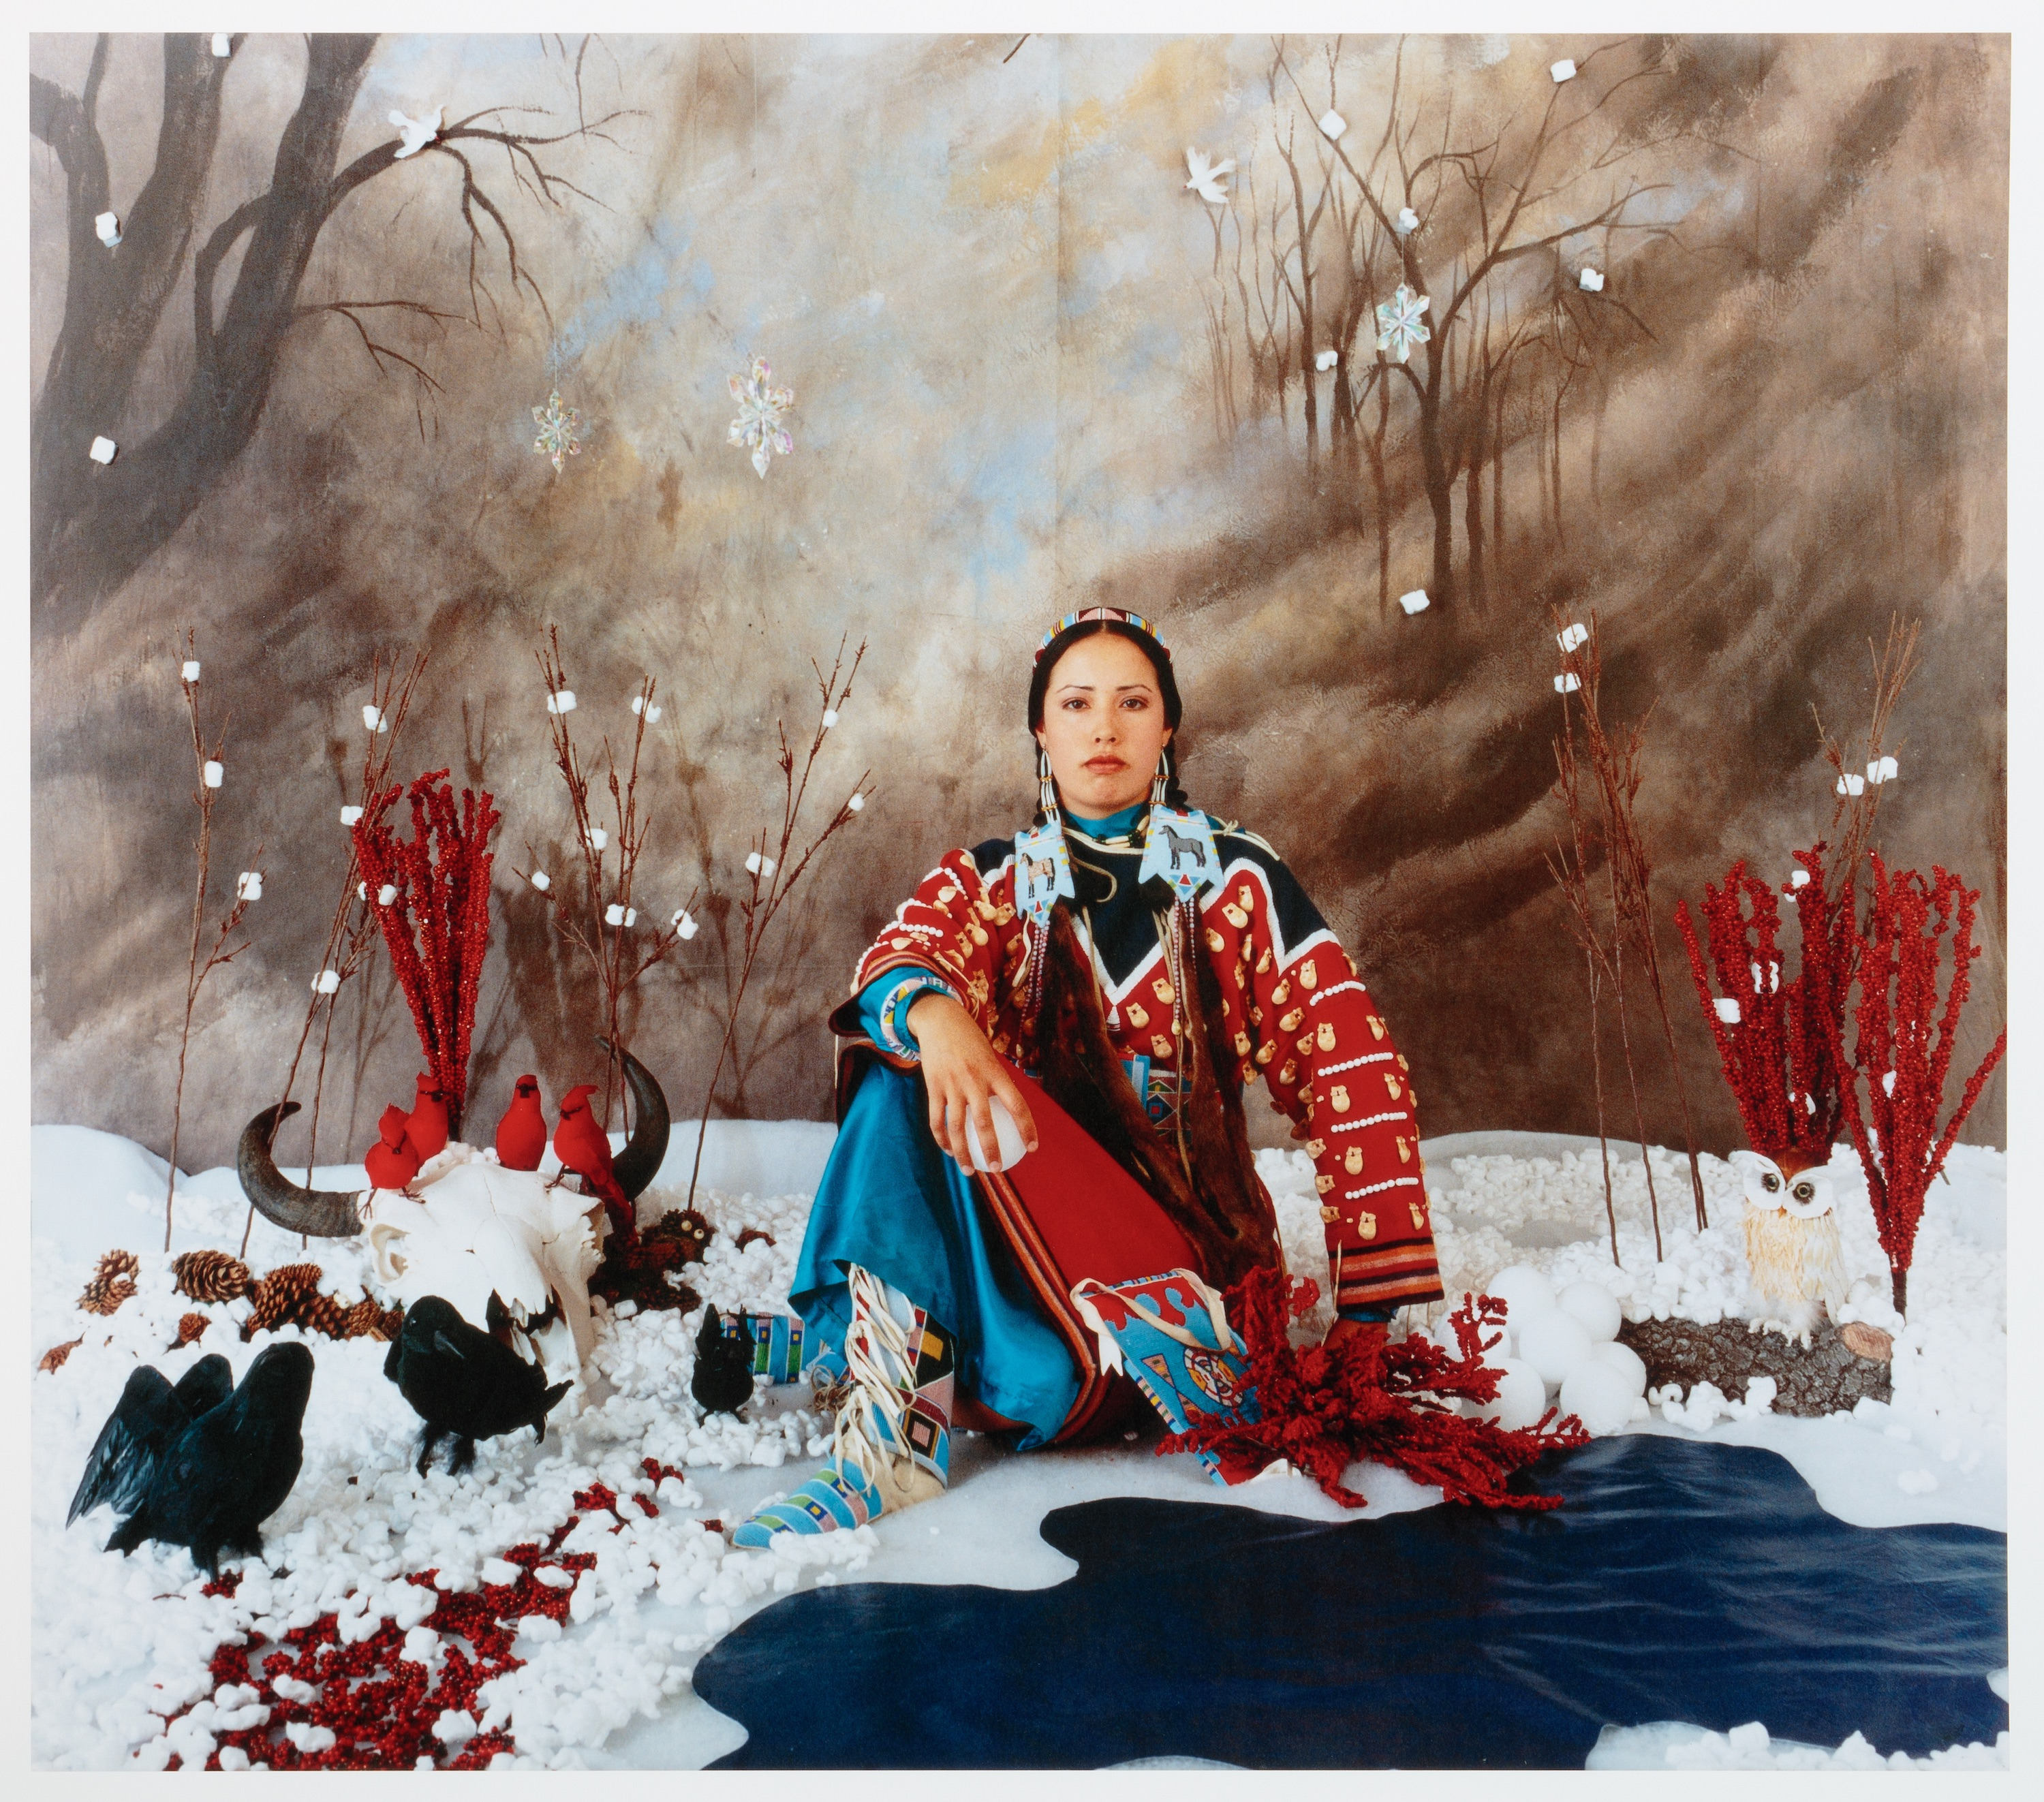 vice.com - Sara Radin - Wendy Red Star's art explores the Indigenous roots of feminism